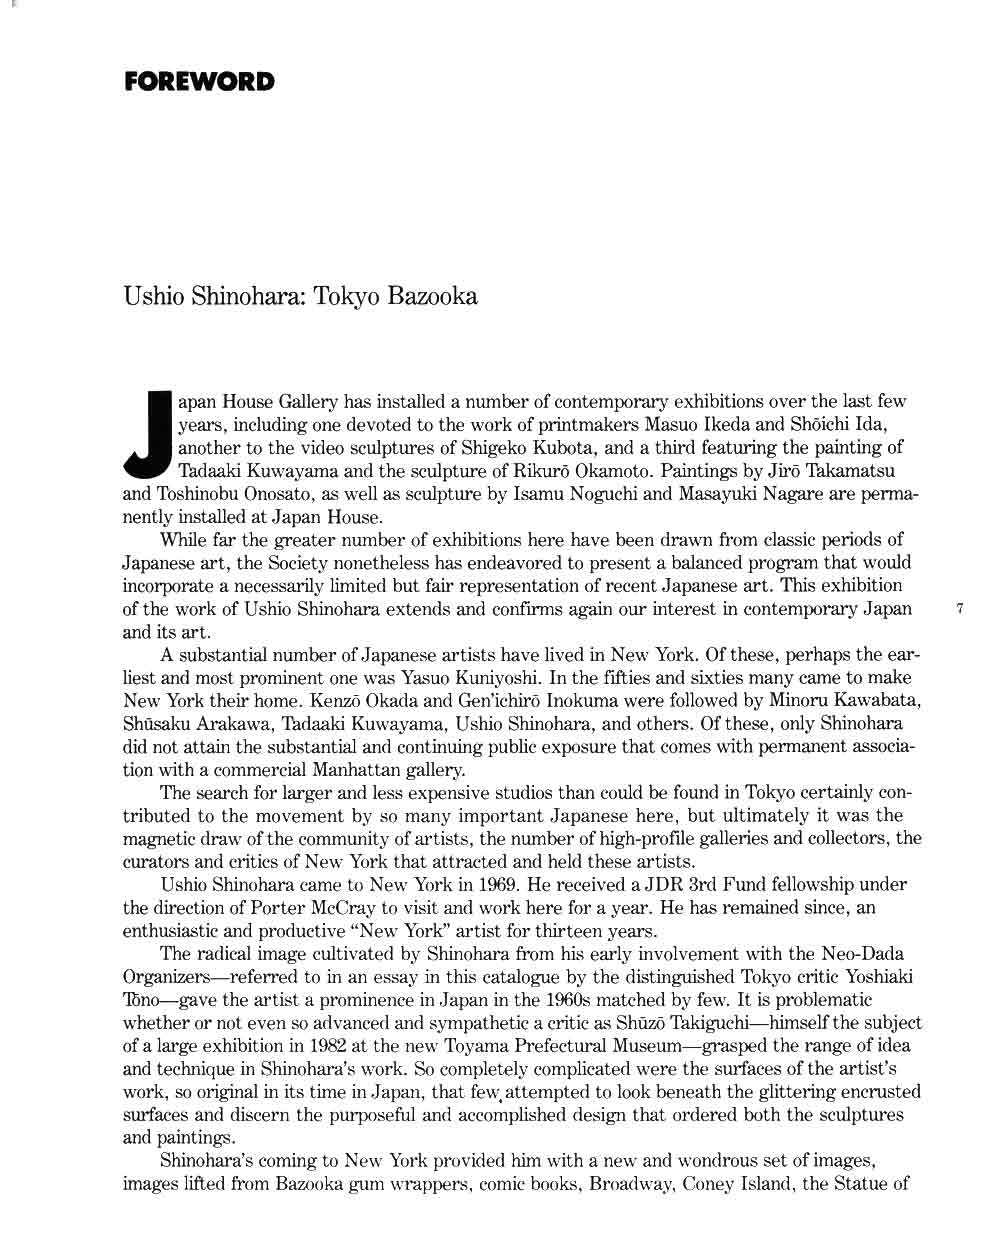 006 Ushio Shinohara Tokyo Bazooka Essay Pg 1 How To Cite Essays Fearsome A Conference Paper Mla 8 From Book Reference In Apa Format Full